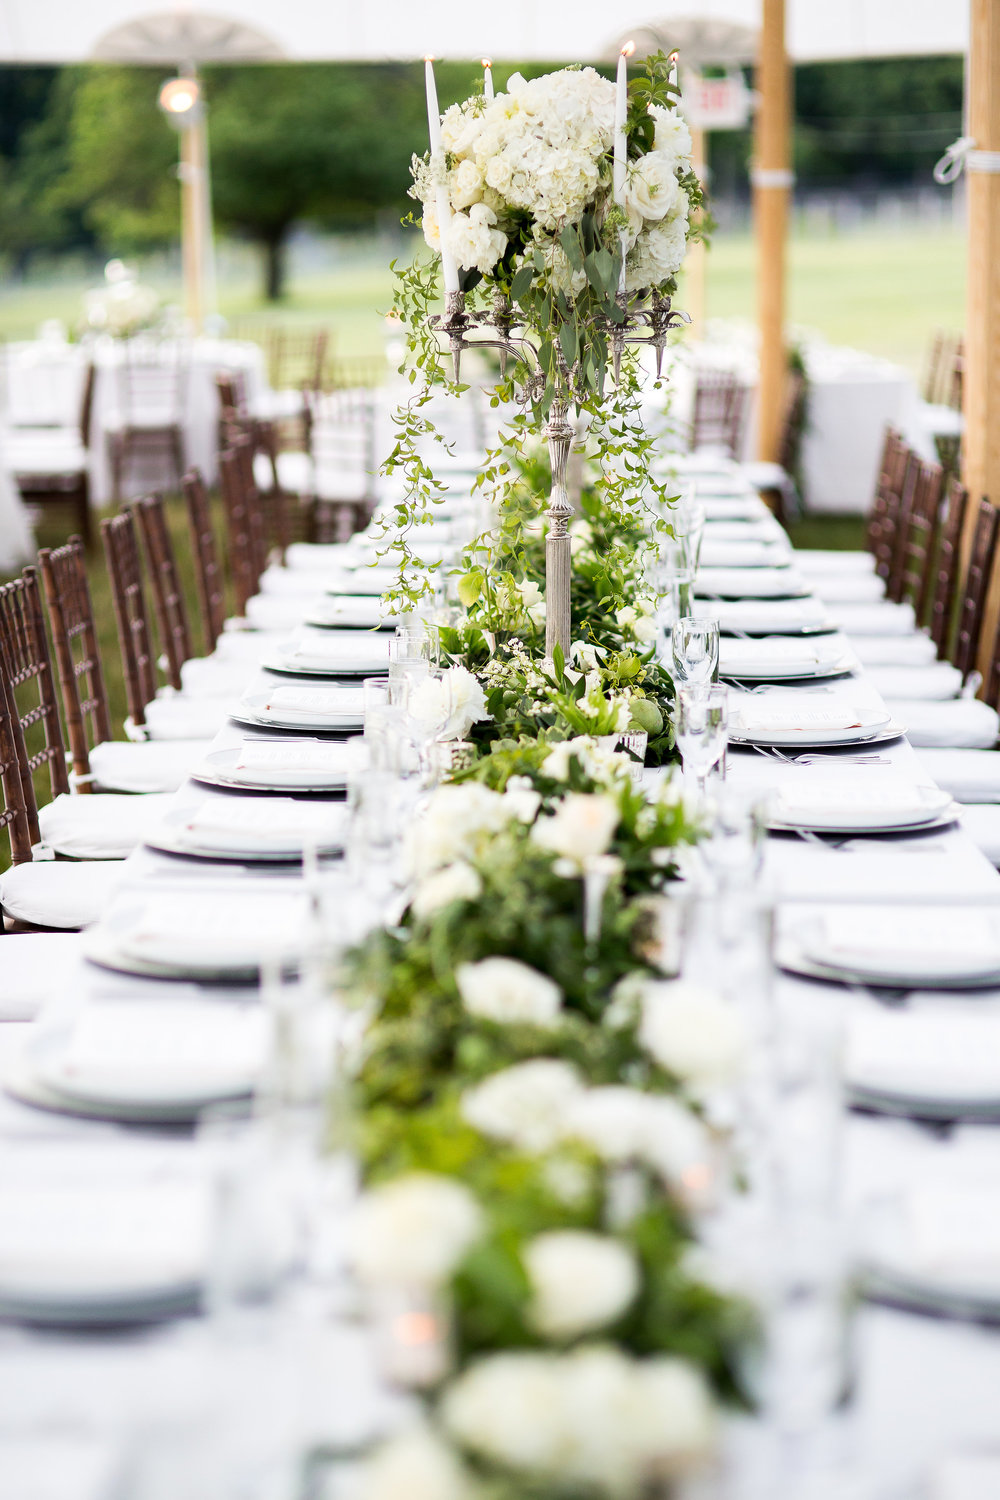 Black Tie Tented Wedding - Connecticut Wedding Planner_013.jpg